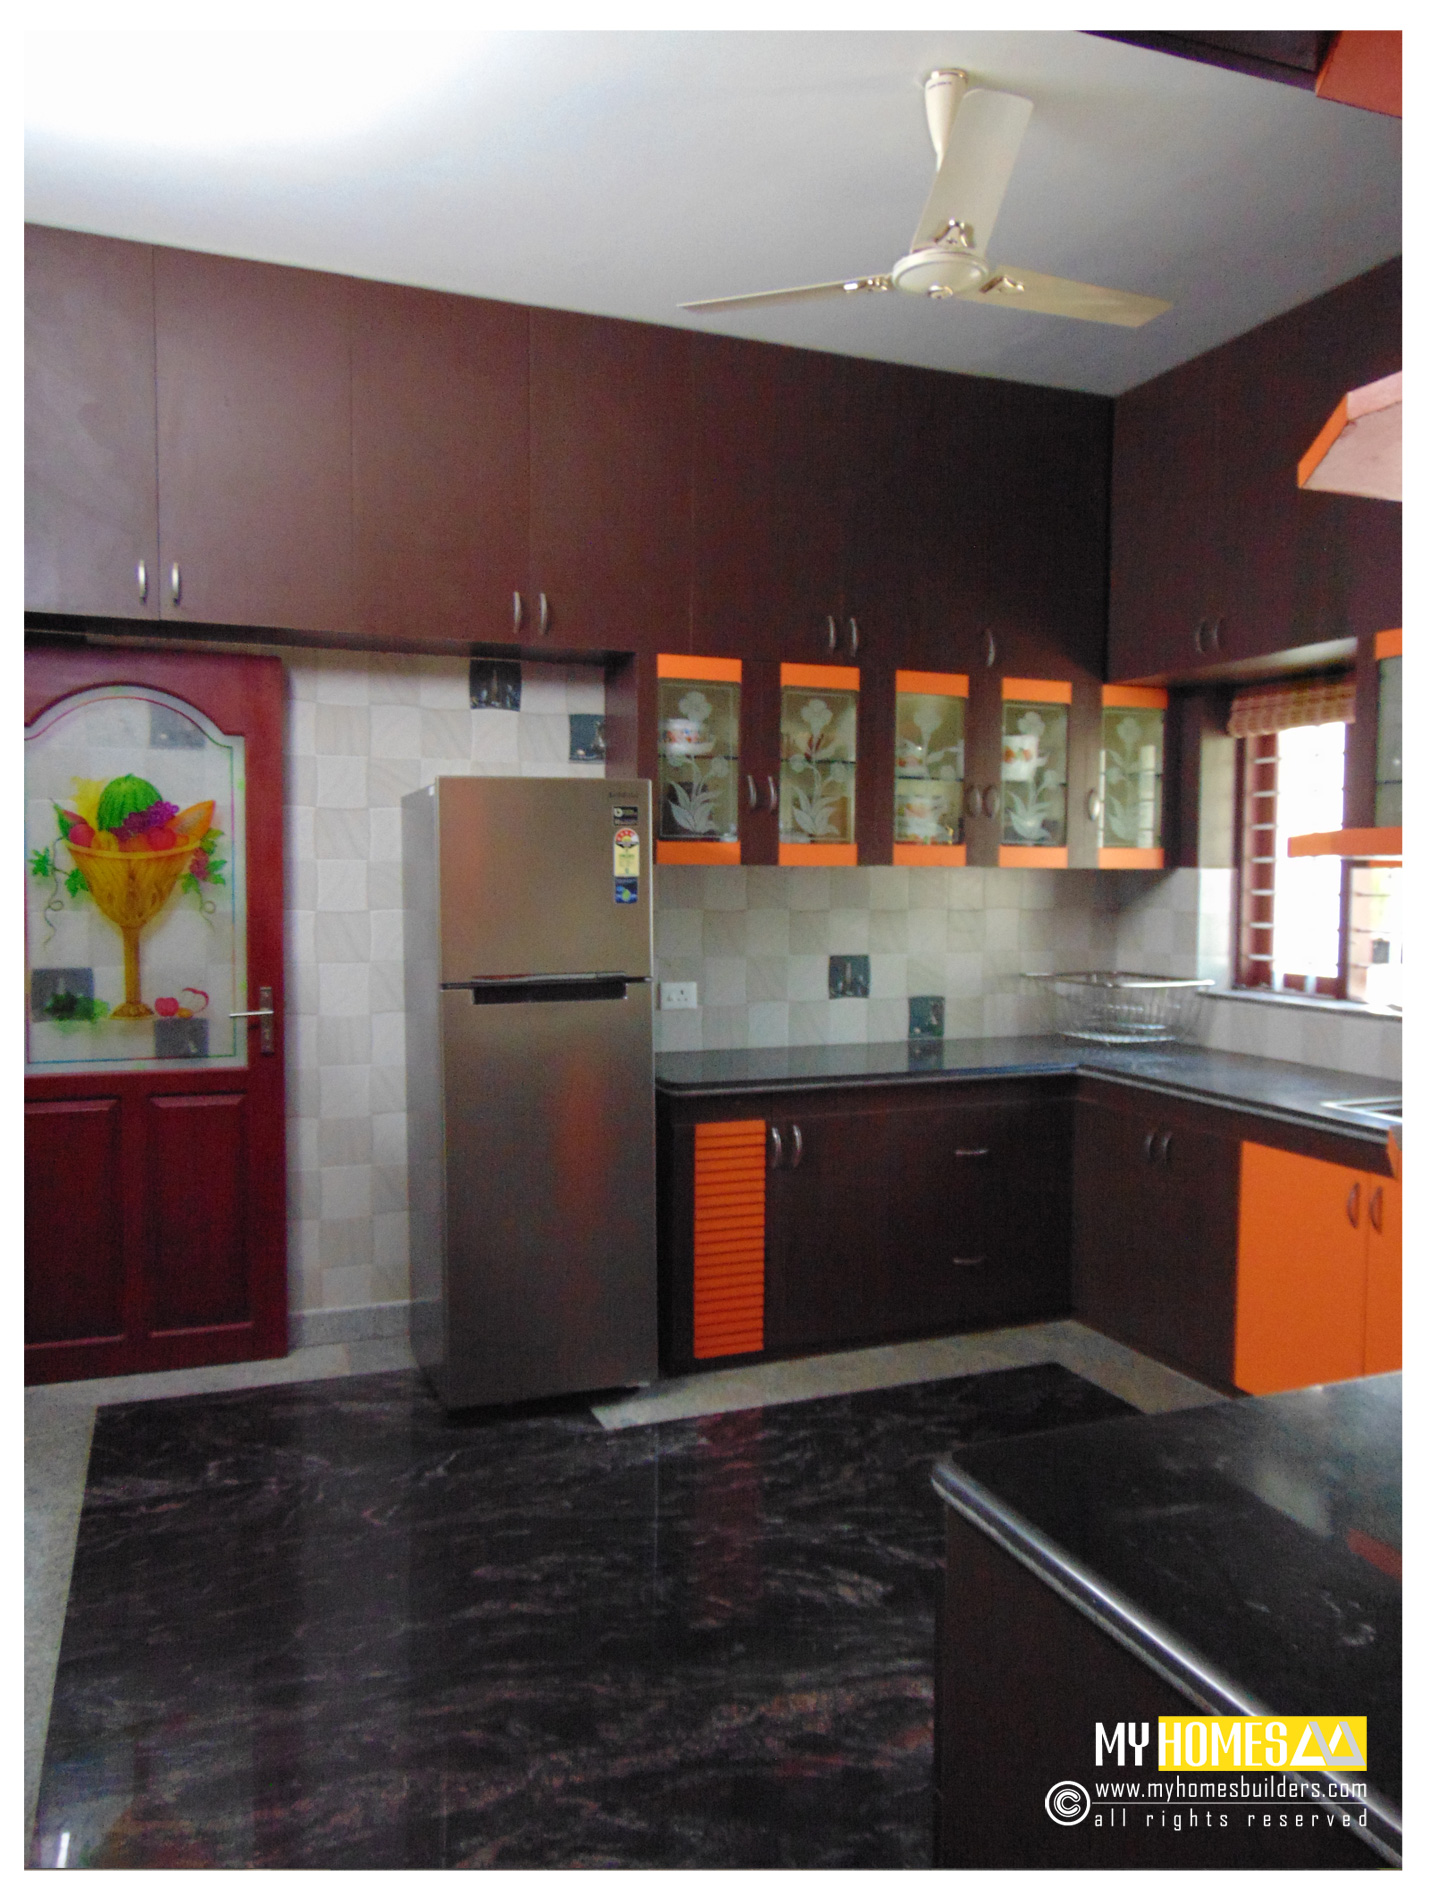 kerala homes designs and plans photos website kerala indiamodular style kerala kitchen interior designs for your homes · home interior